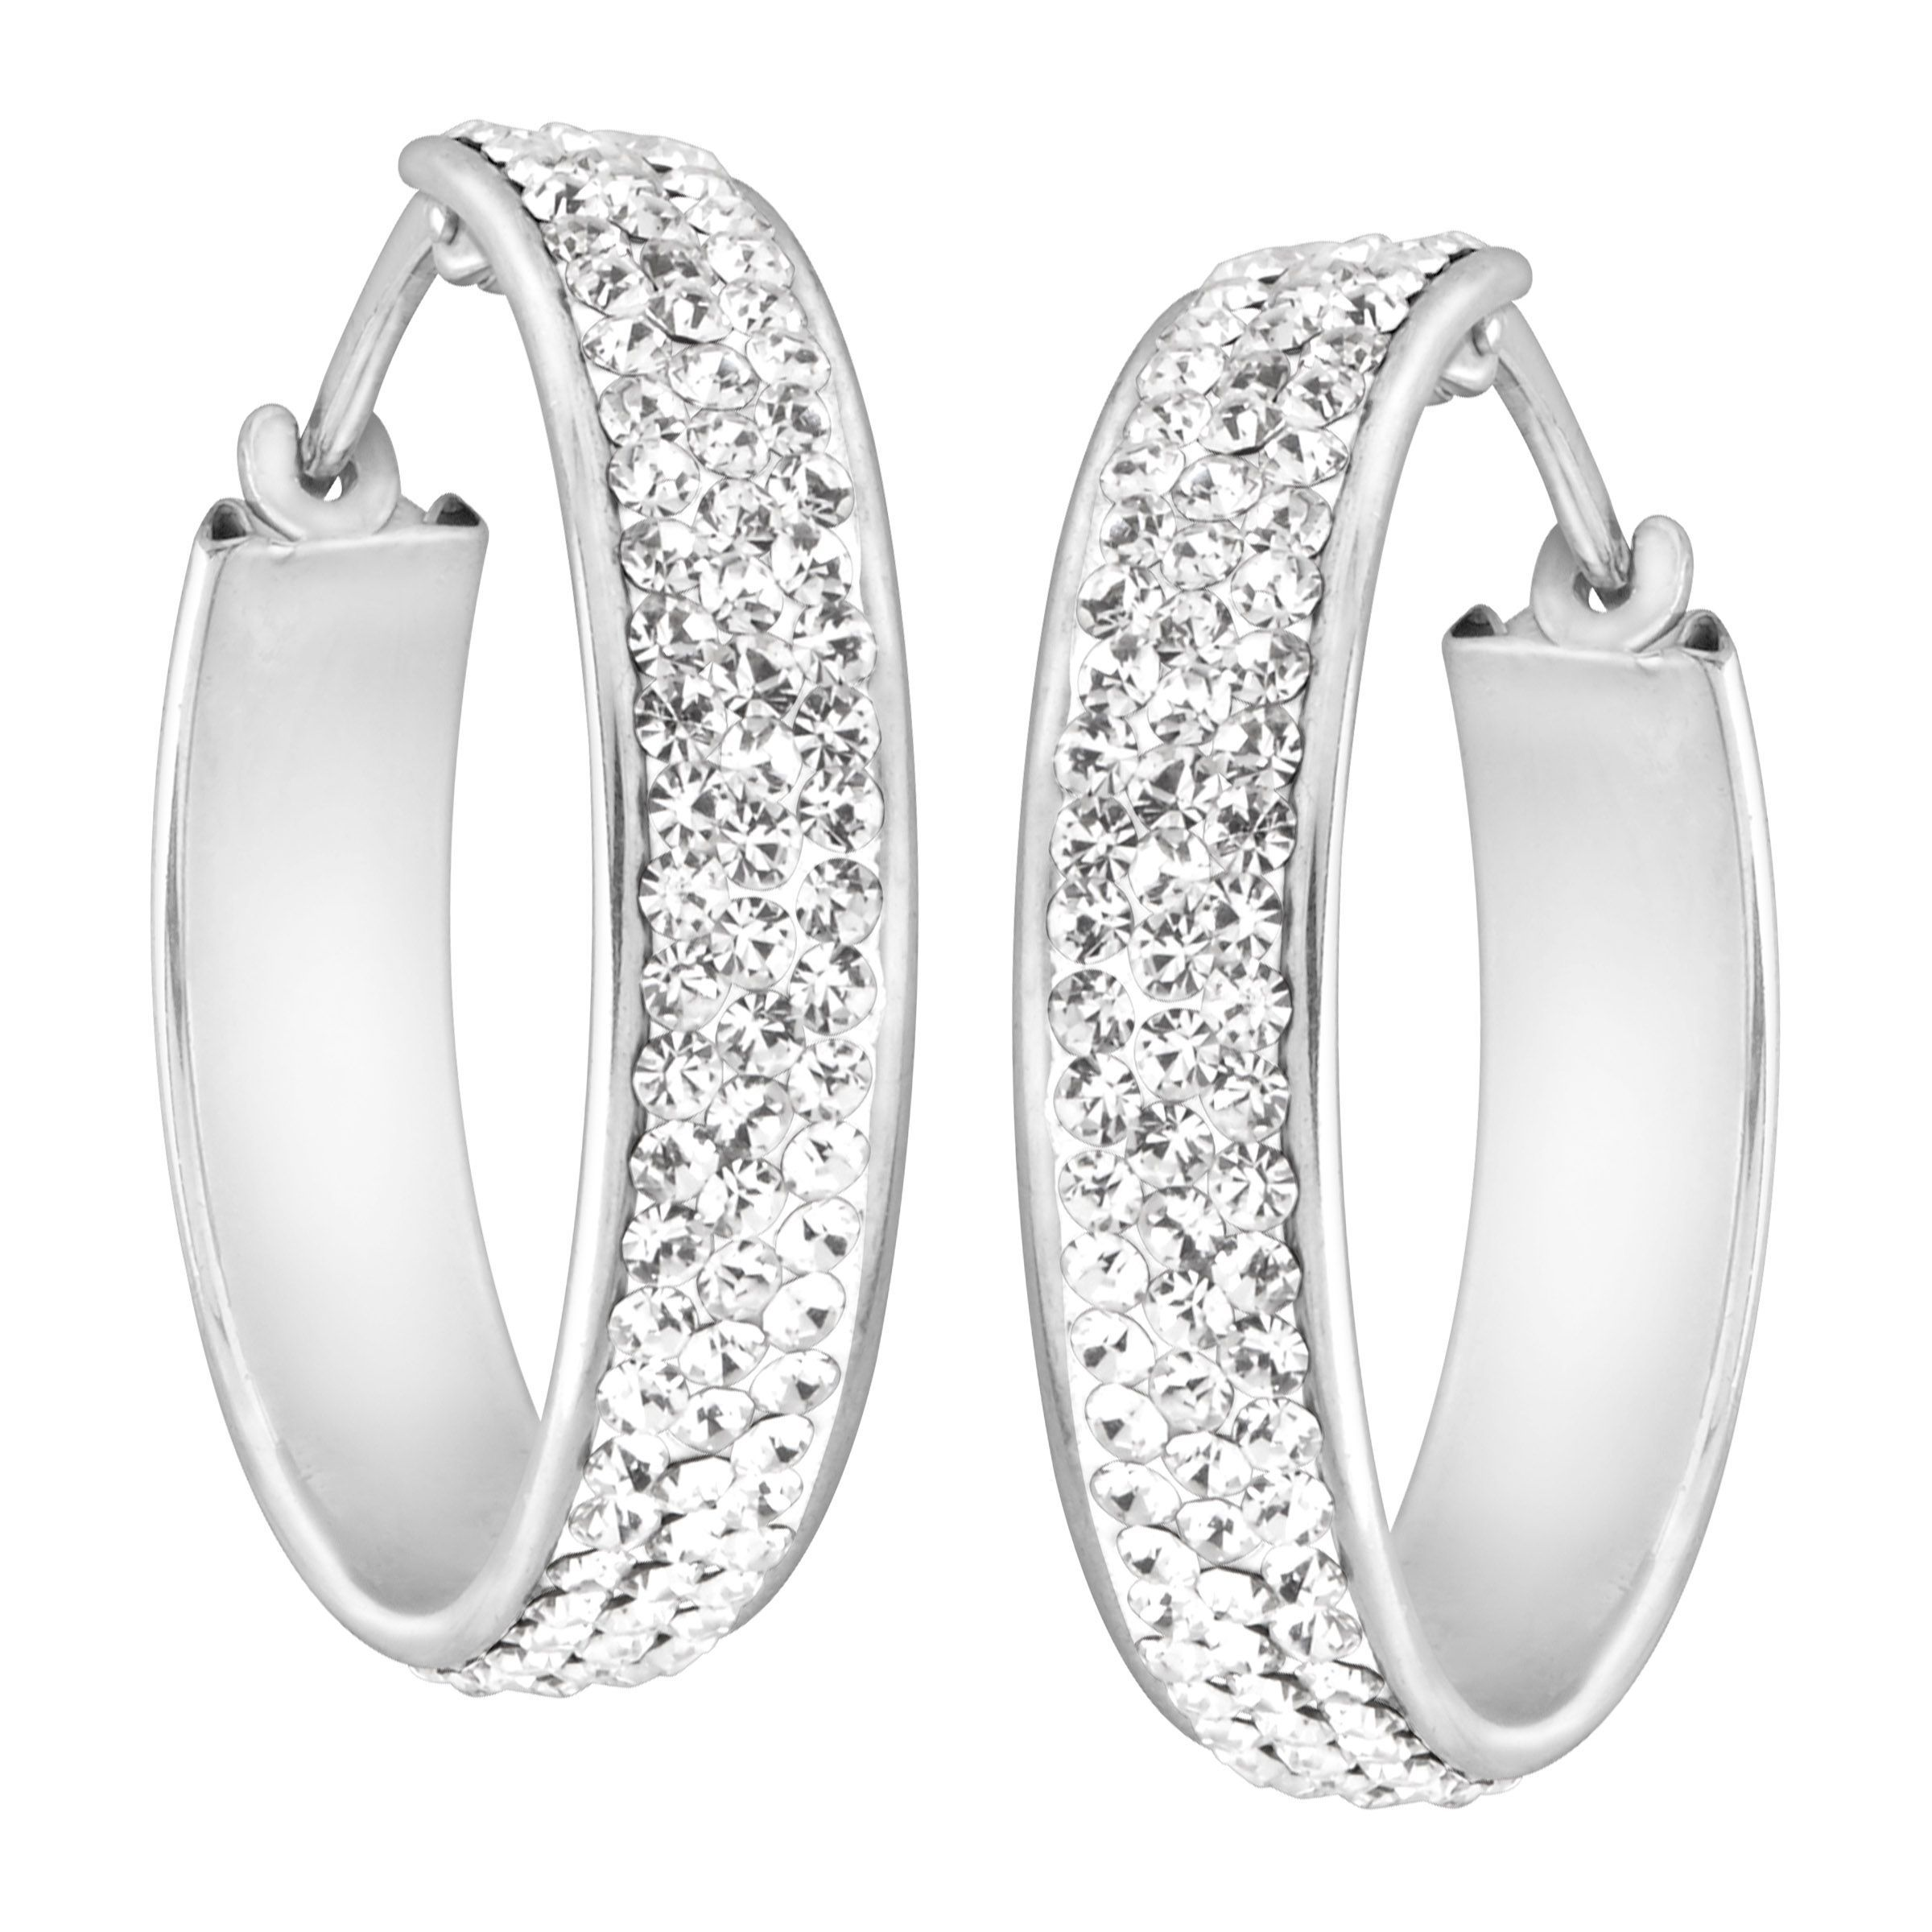 4095717c Details about Crystaluxe Hoop Earrings with White Swarovski Crystals in  Sterling Silver